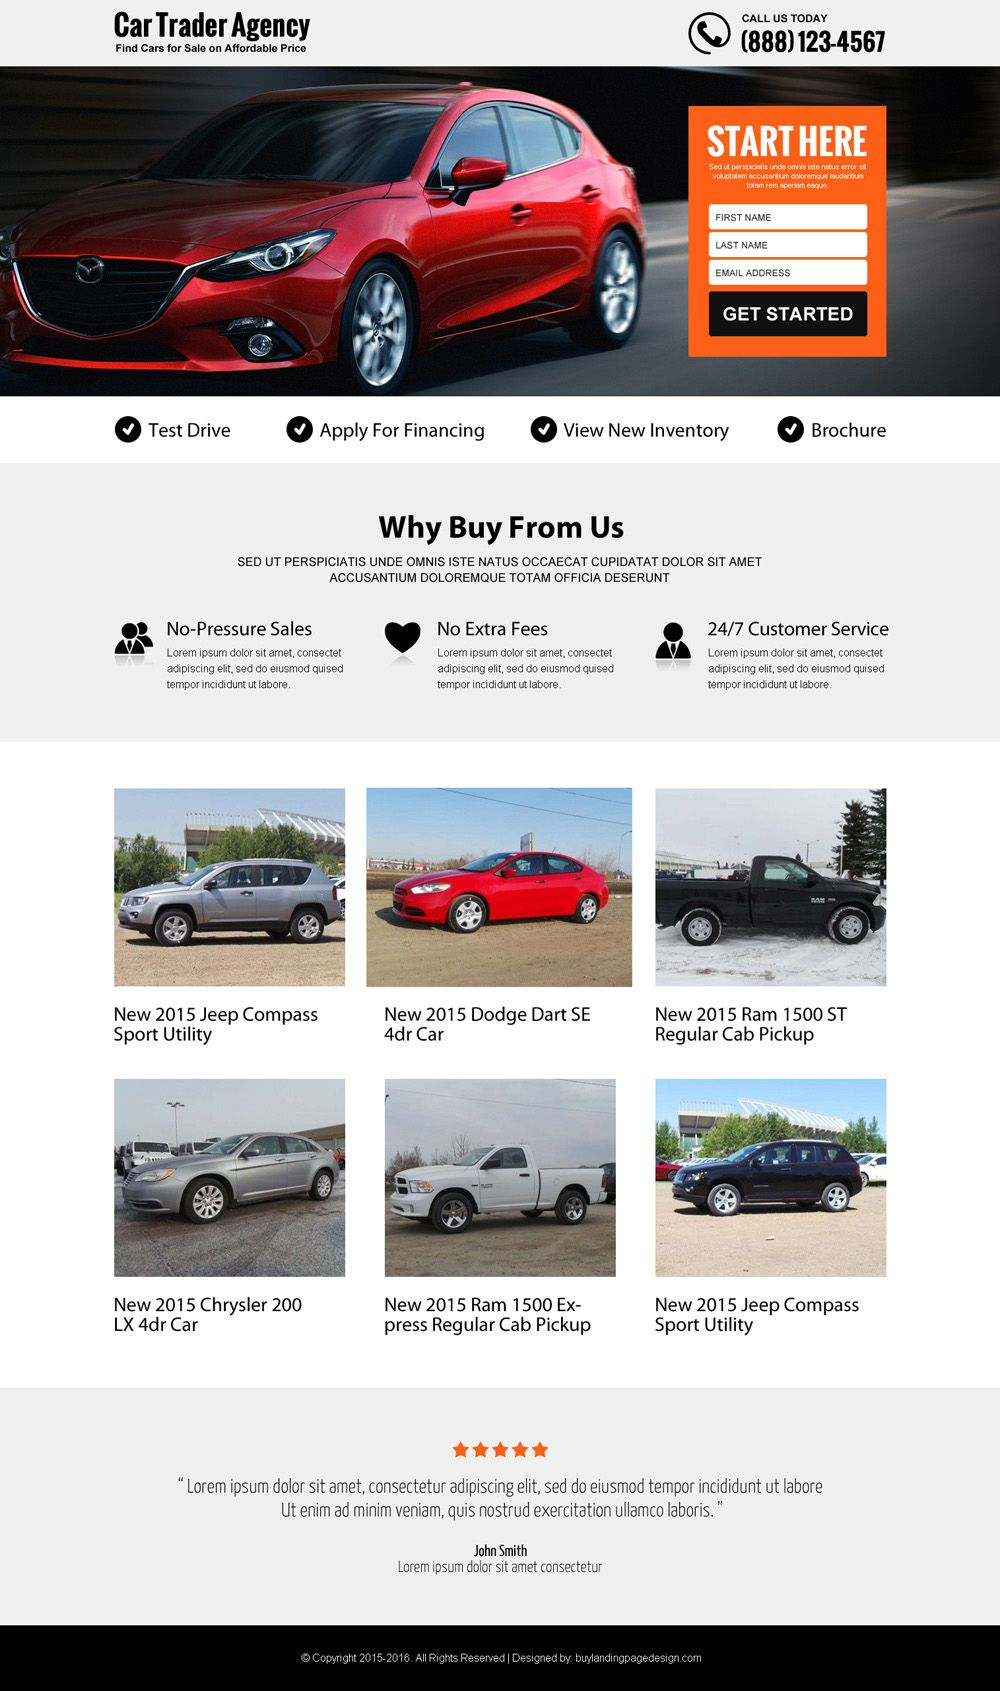 best car trading agency lead generating landing page design | Lead ...